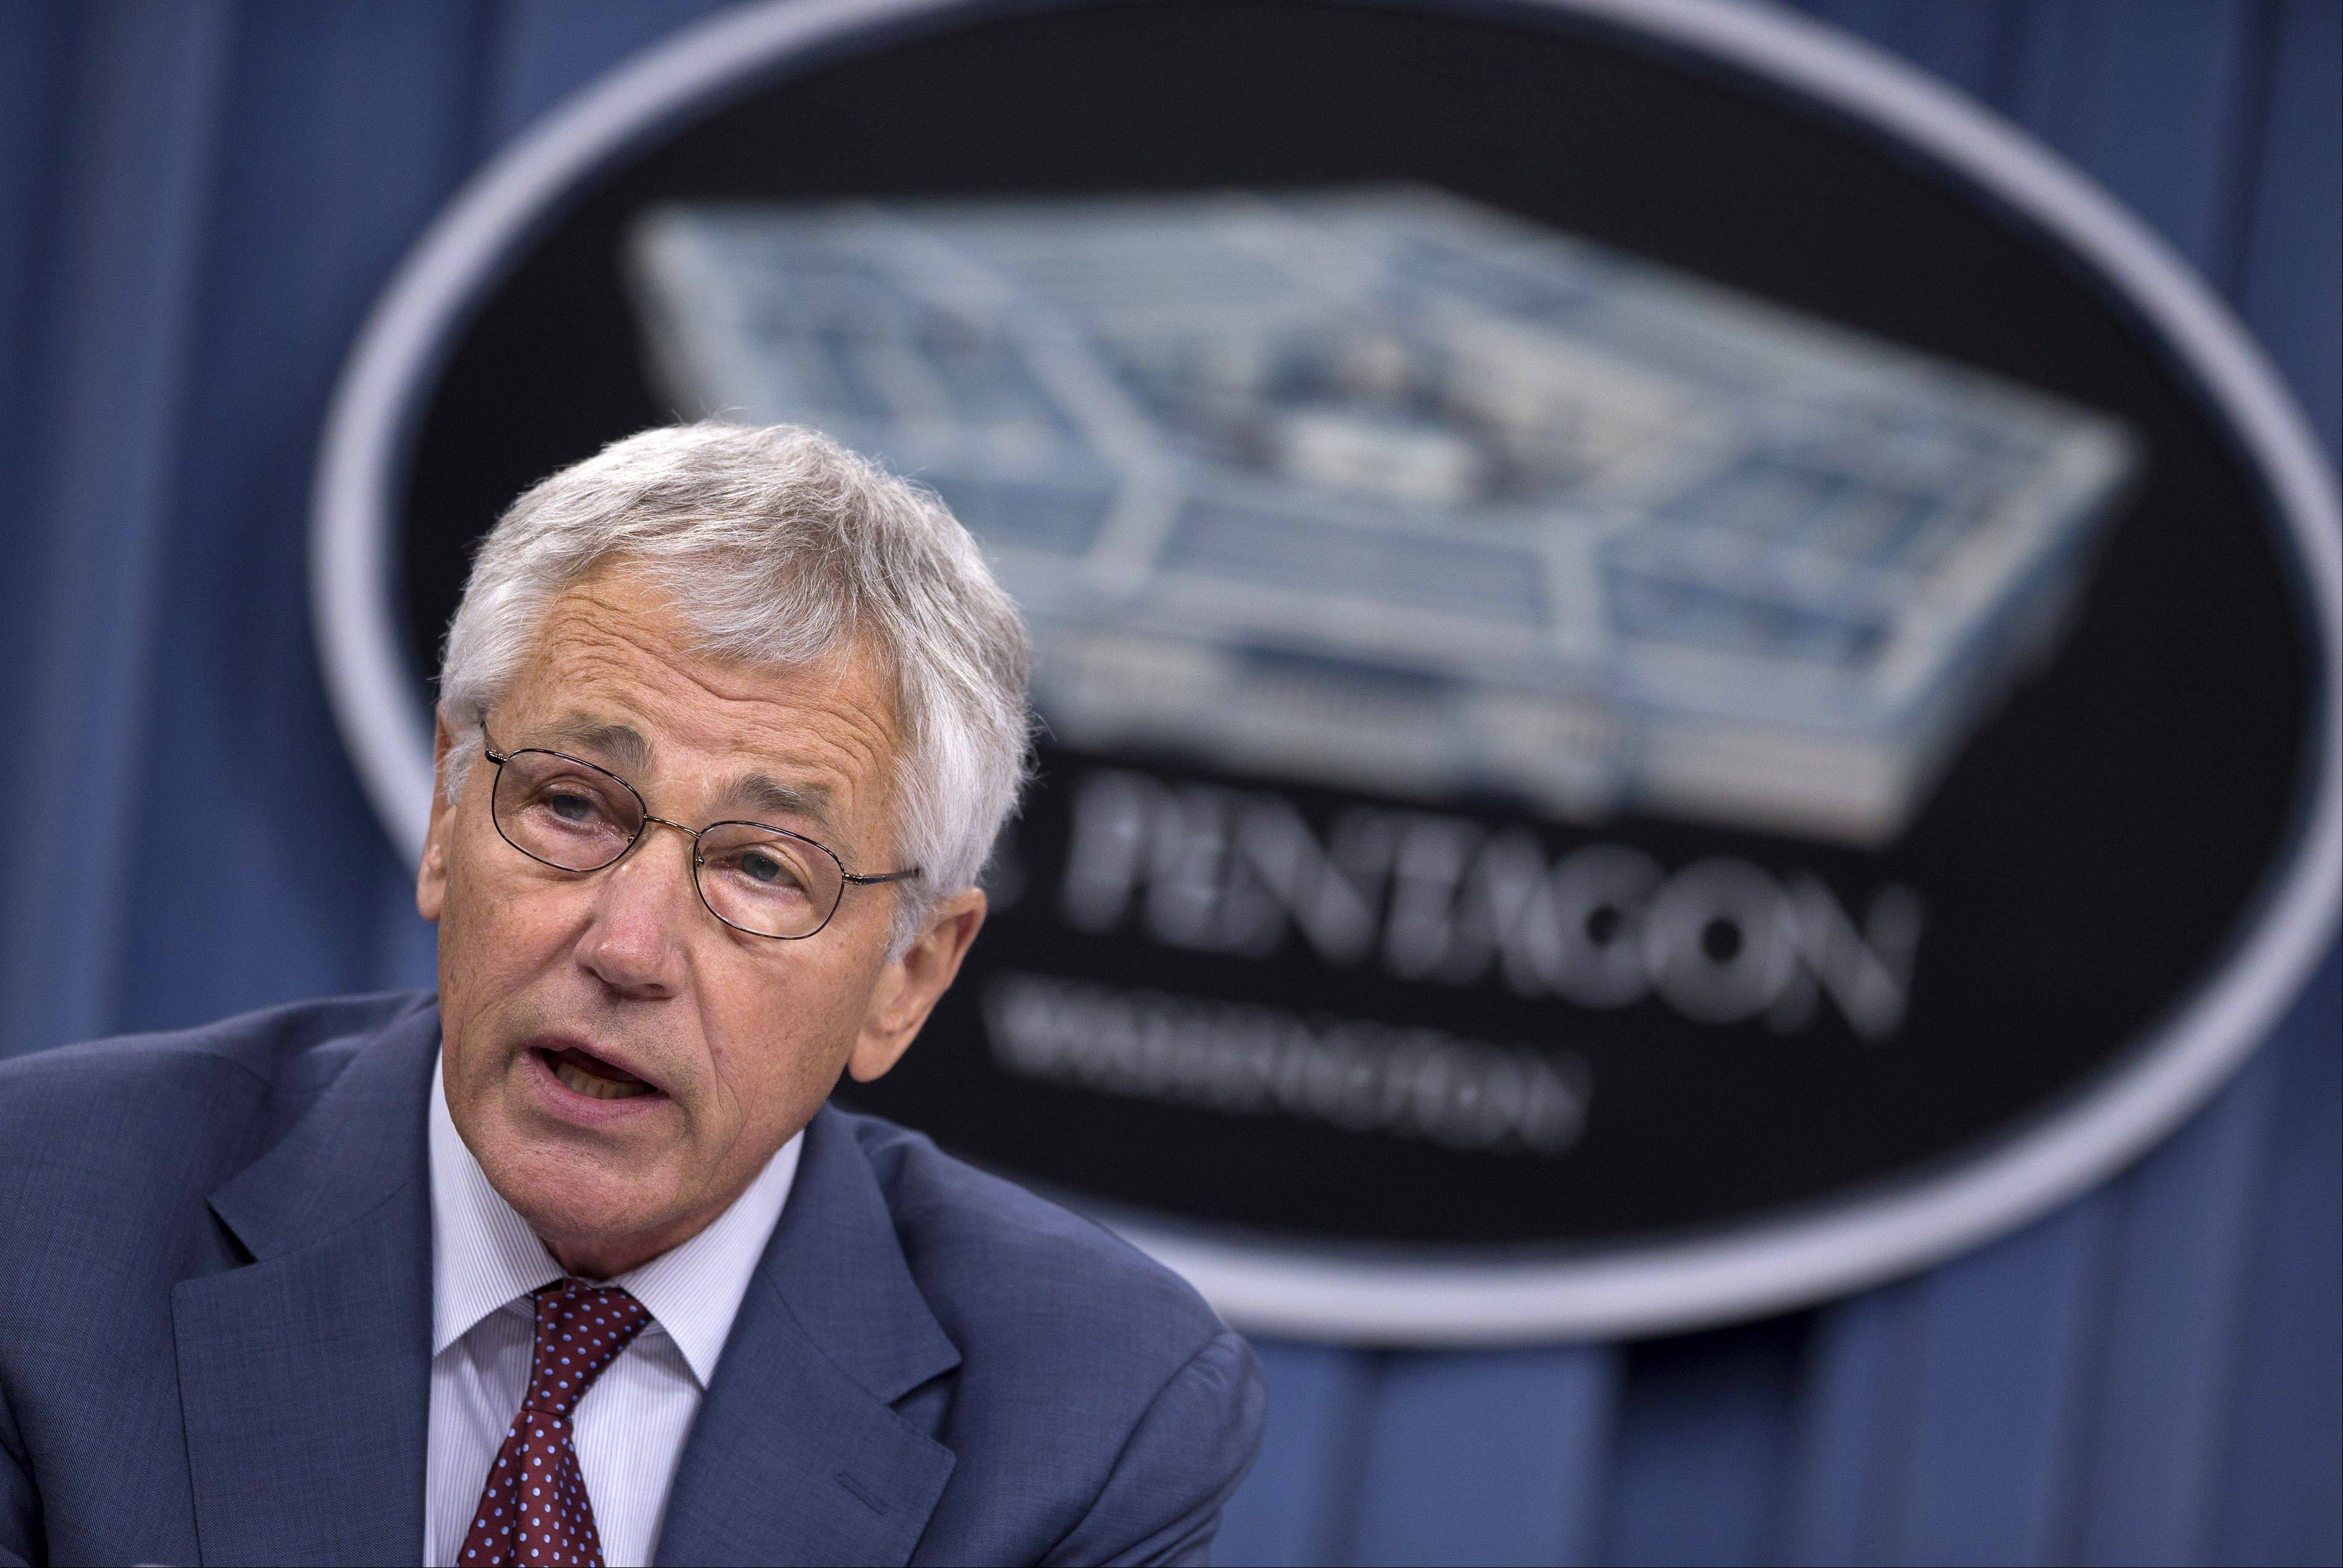 "U.S. Defense Secretary Chuck Hagel will meet for the first time with China's Minister of National Defense Gen. Chang Wanquan at the Pentagon on Monday. Hagel is presiding over a Pentagon making a deliberate ""pivot"" to Asia after more than a decade of wars in the greater Middle East, and improving ties with China is at the heart of the Obama administration's Asia strategy."